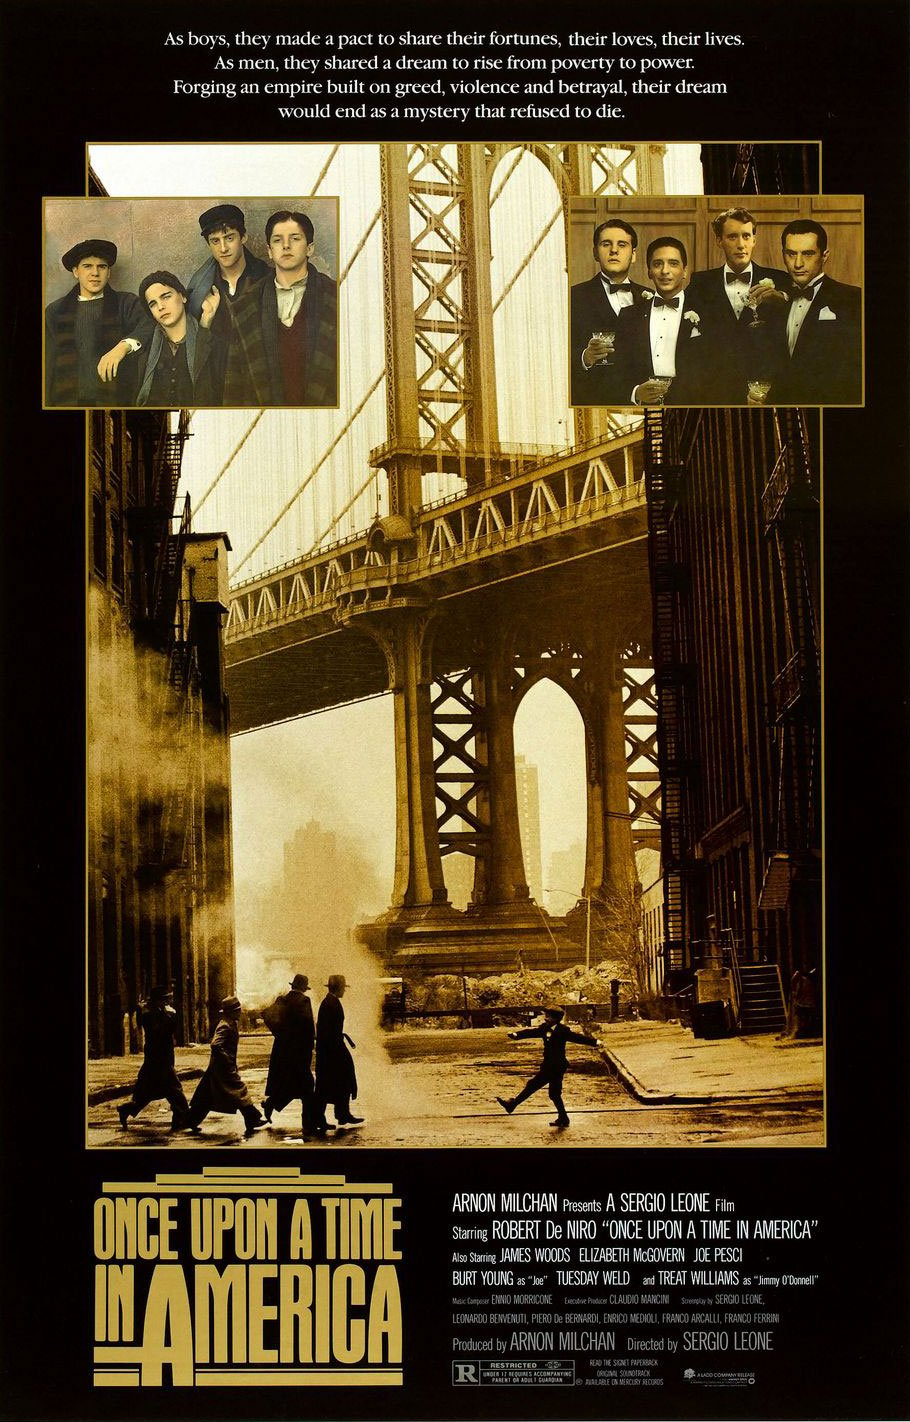 music from once upon a time in america